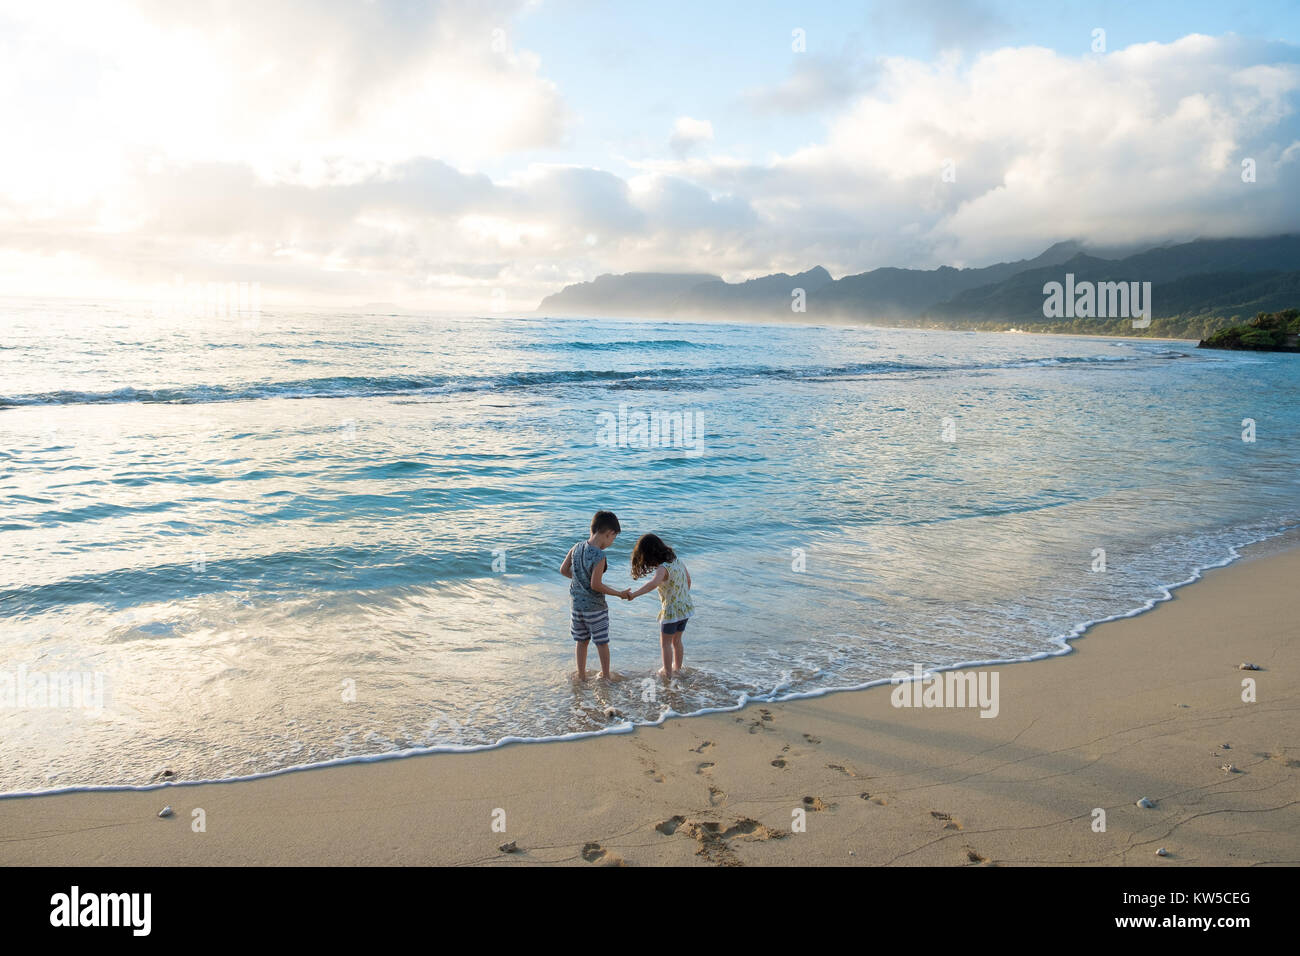 Siblings experiencing the beach and ocean together while on a tropical vacation to Oahu Hawaii with nice warm weather Stock Photo